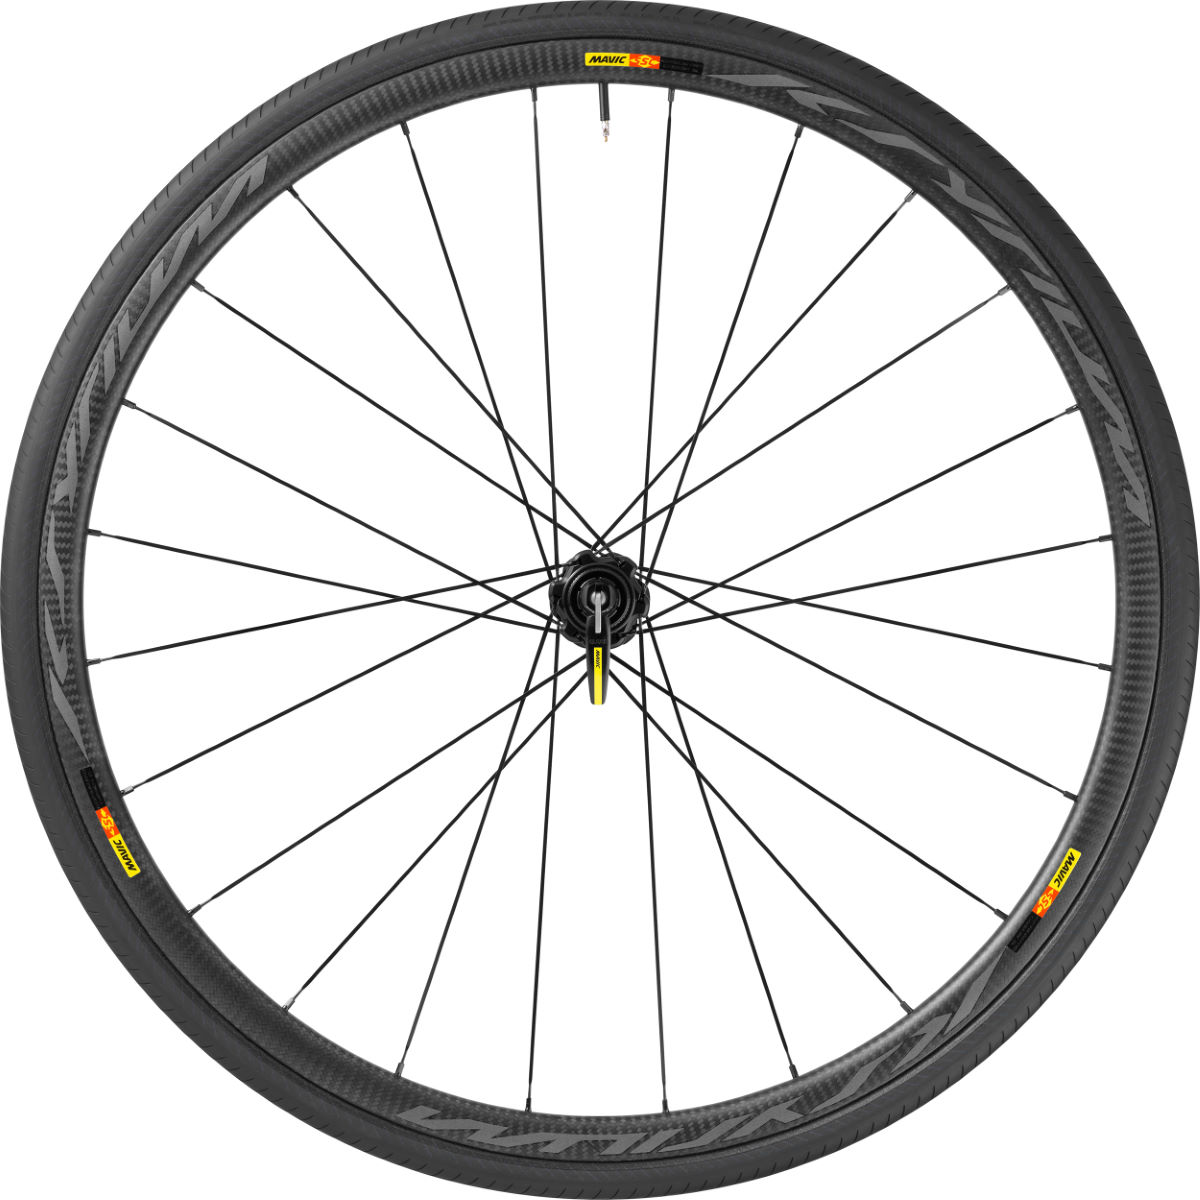 Roue avant Mavic Ksyrium Pro SL (à disque, carbone) - 700c - Clincher Black - 6 Bolt Roues performance